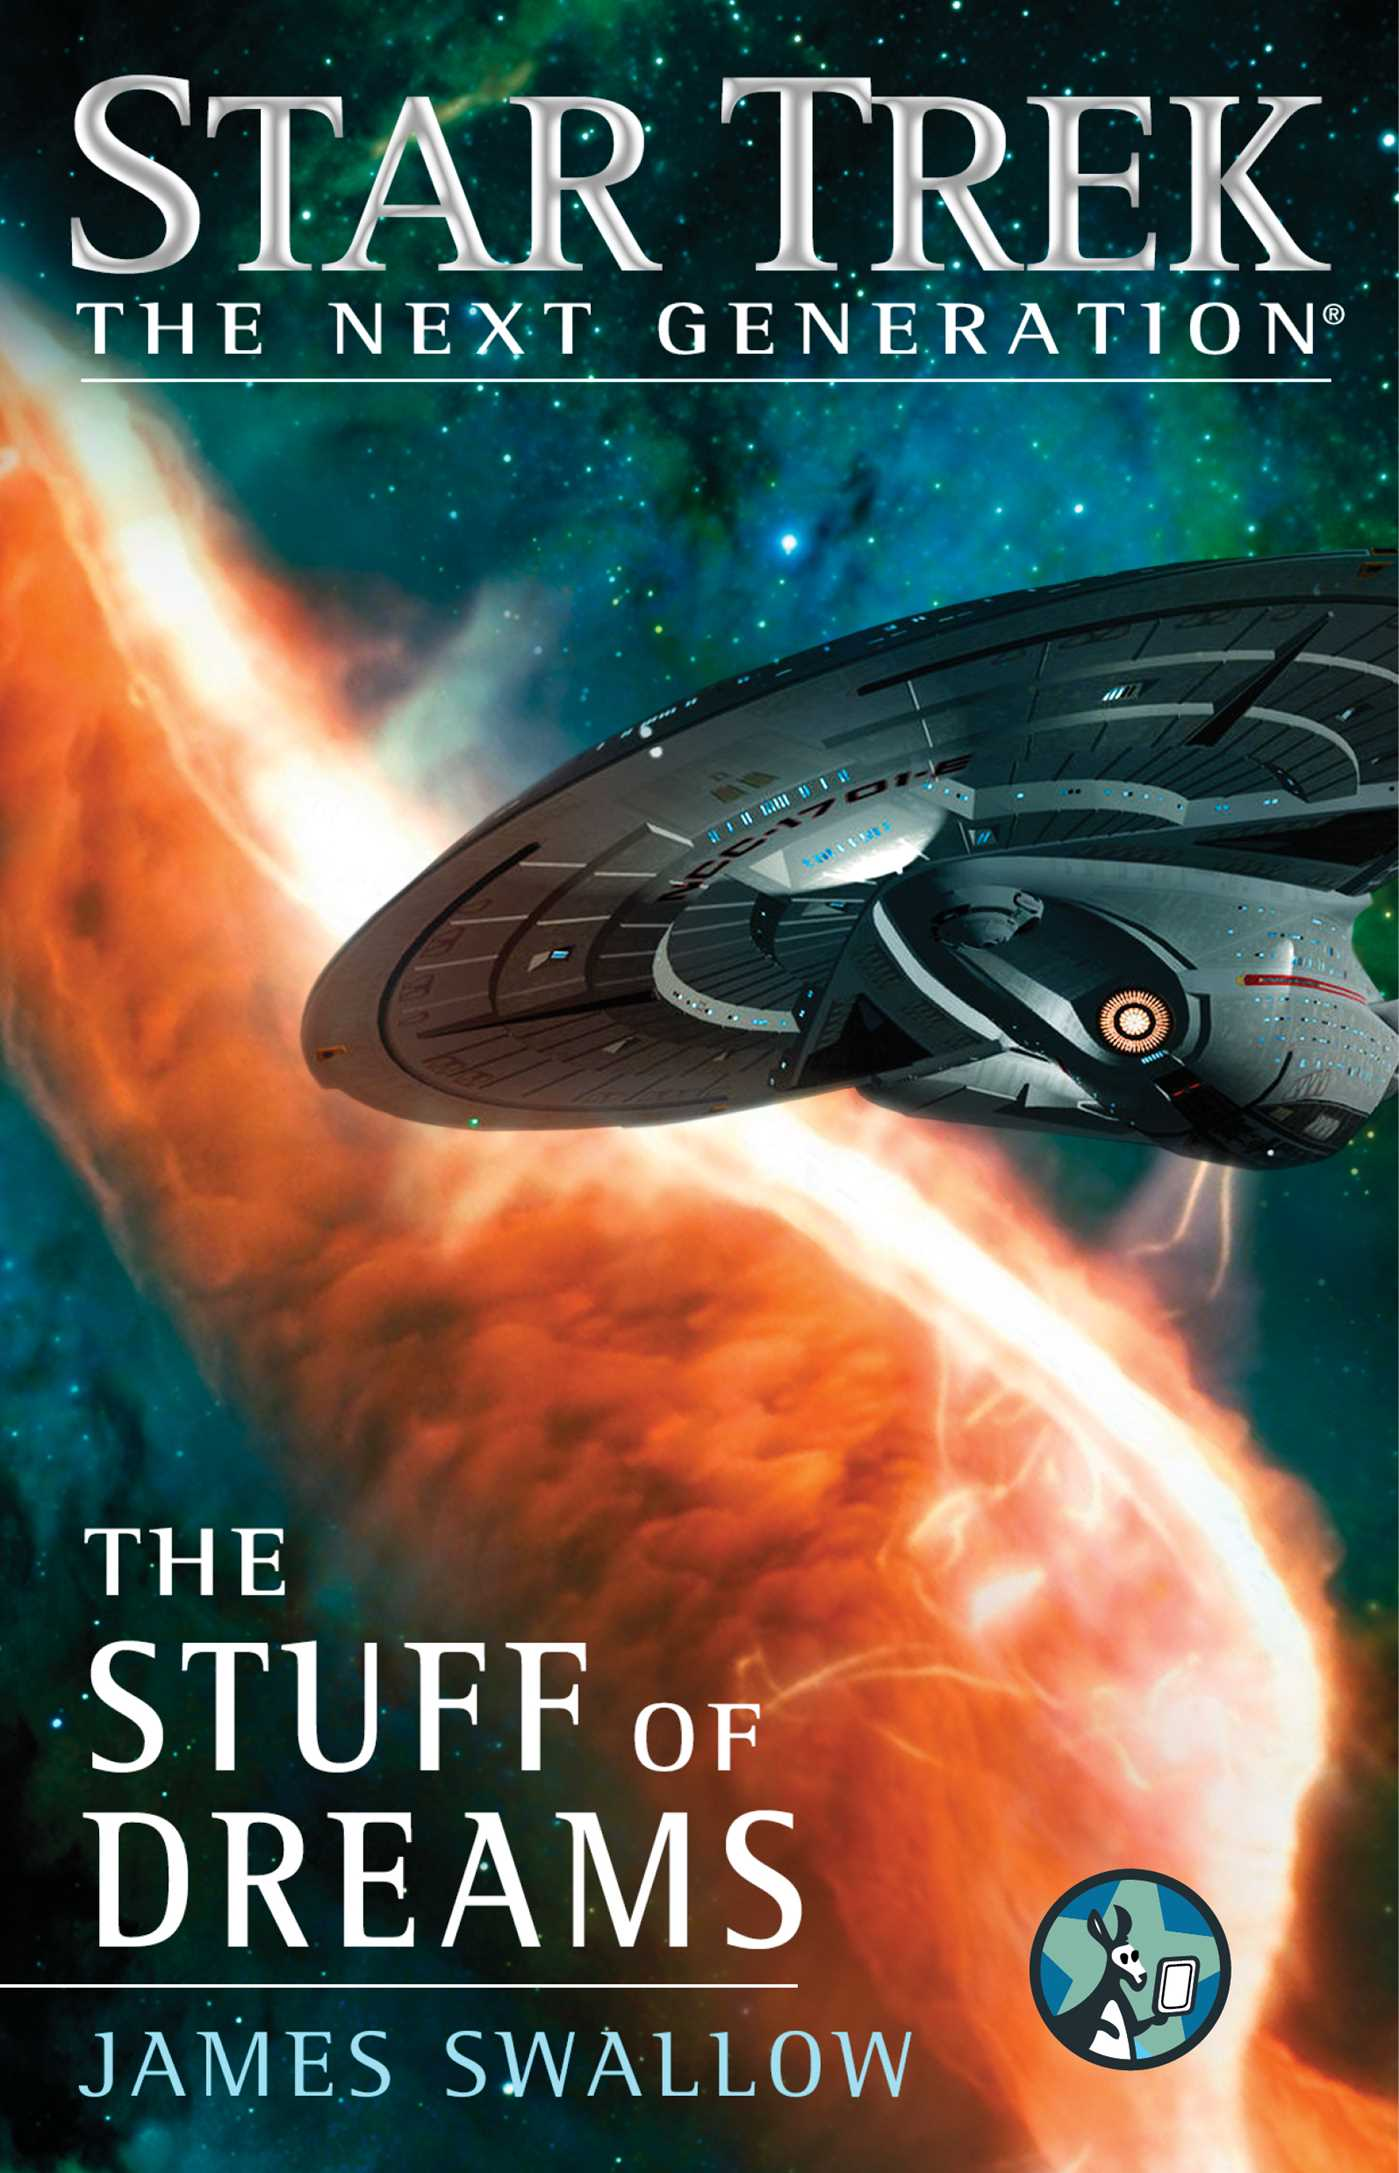 Star-trek-the-next-generation-the-stuff-of-dreams-9781451696615_hr